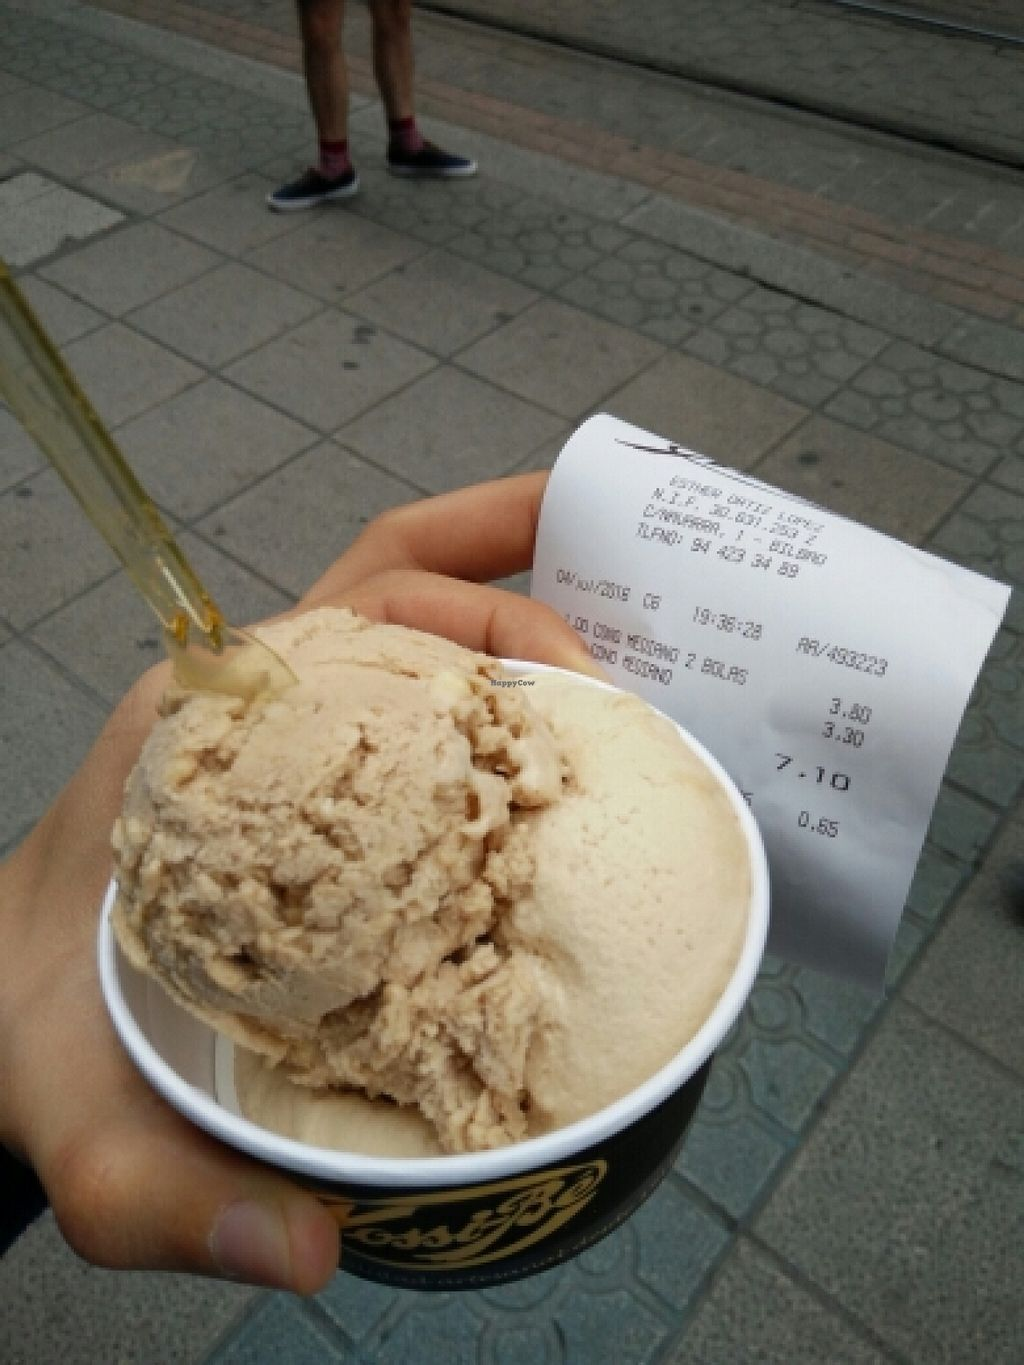 """Photo of Nossi Be  by <a href=""""/members/profile/martinicontomate"""">martinicontomate</a> <br/>ice cream with price <br/> July 4, 2016  - <a href='/contact/abuse/image/30023/157770'>Report</a>"""